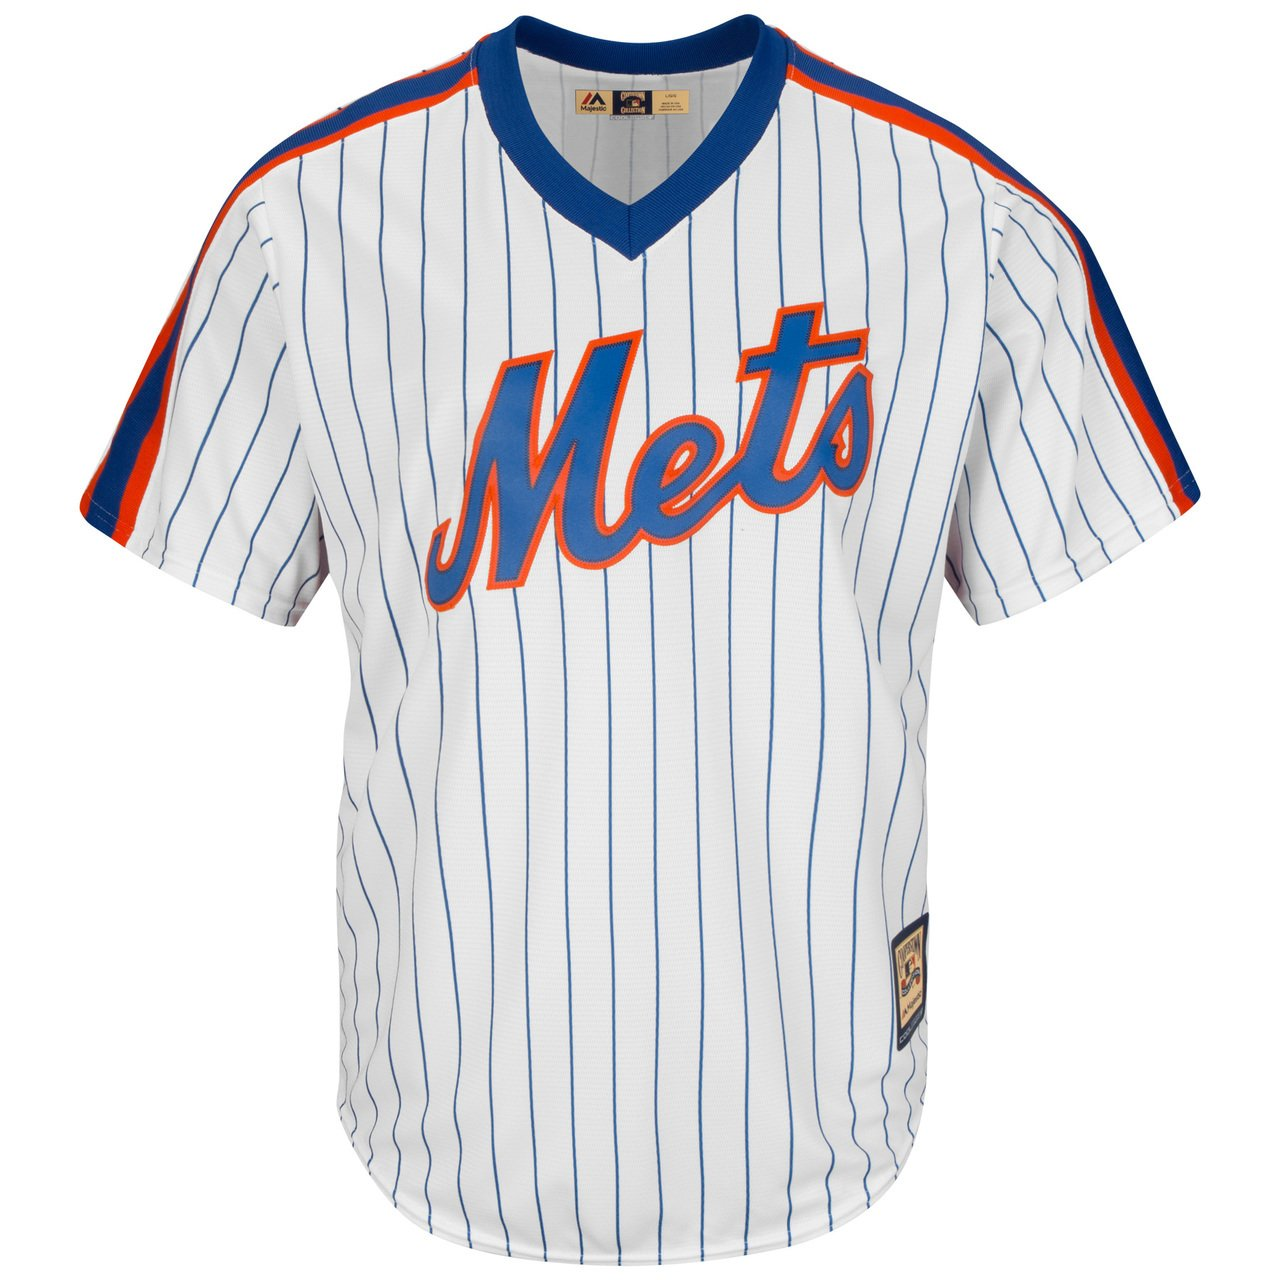 huge discount 8df67 6853b Jersey Base Cool Mets New York curve.emmalore.com